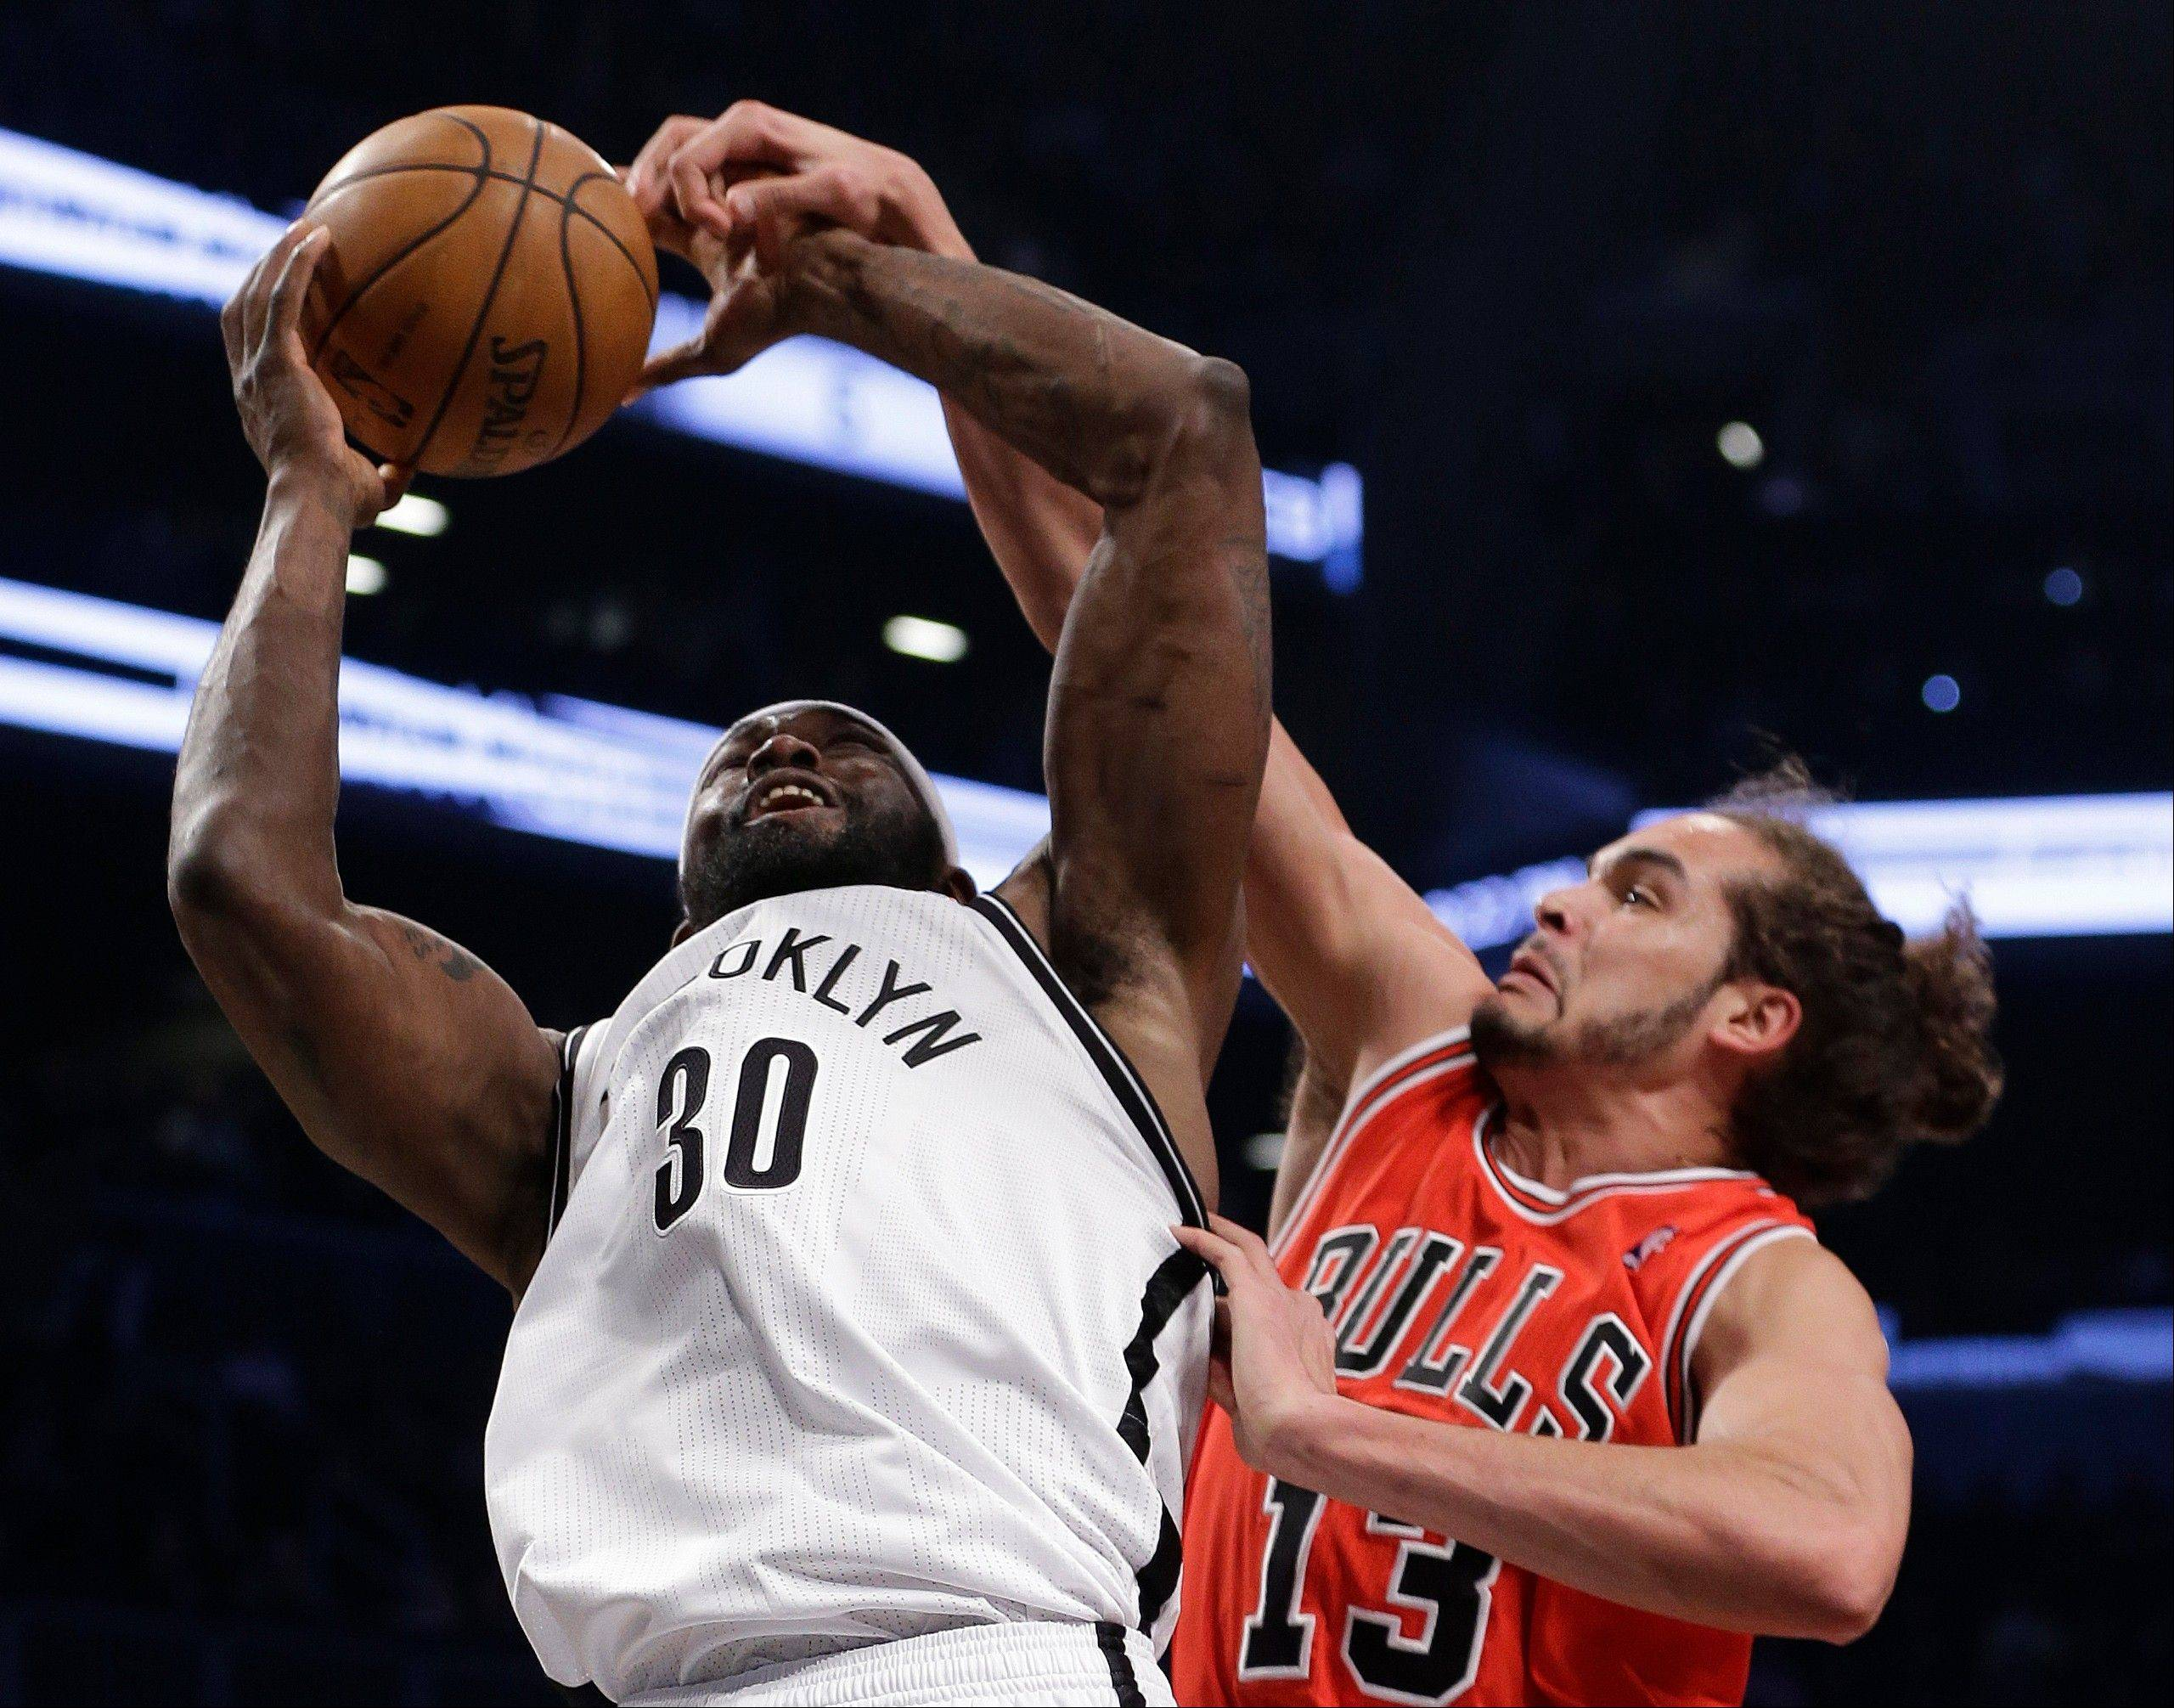 Bulls center Joakim Noah, here attempting to block a shot by Reggie Evans on Monday, came in fourth place for the NBA defensive player of the year.